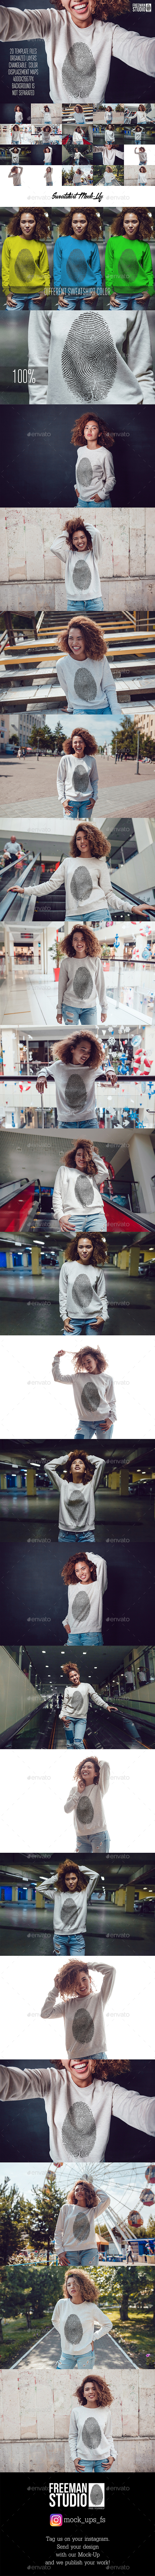 GraphicRiver Sweatshirt Mock-Up Vol.8 2017 20532386